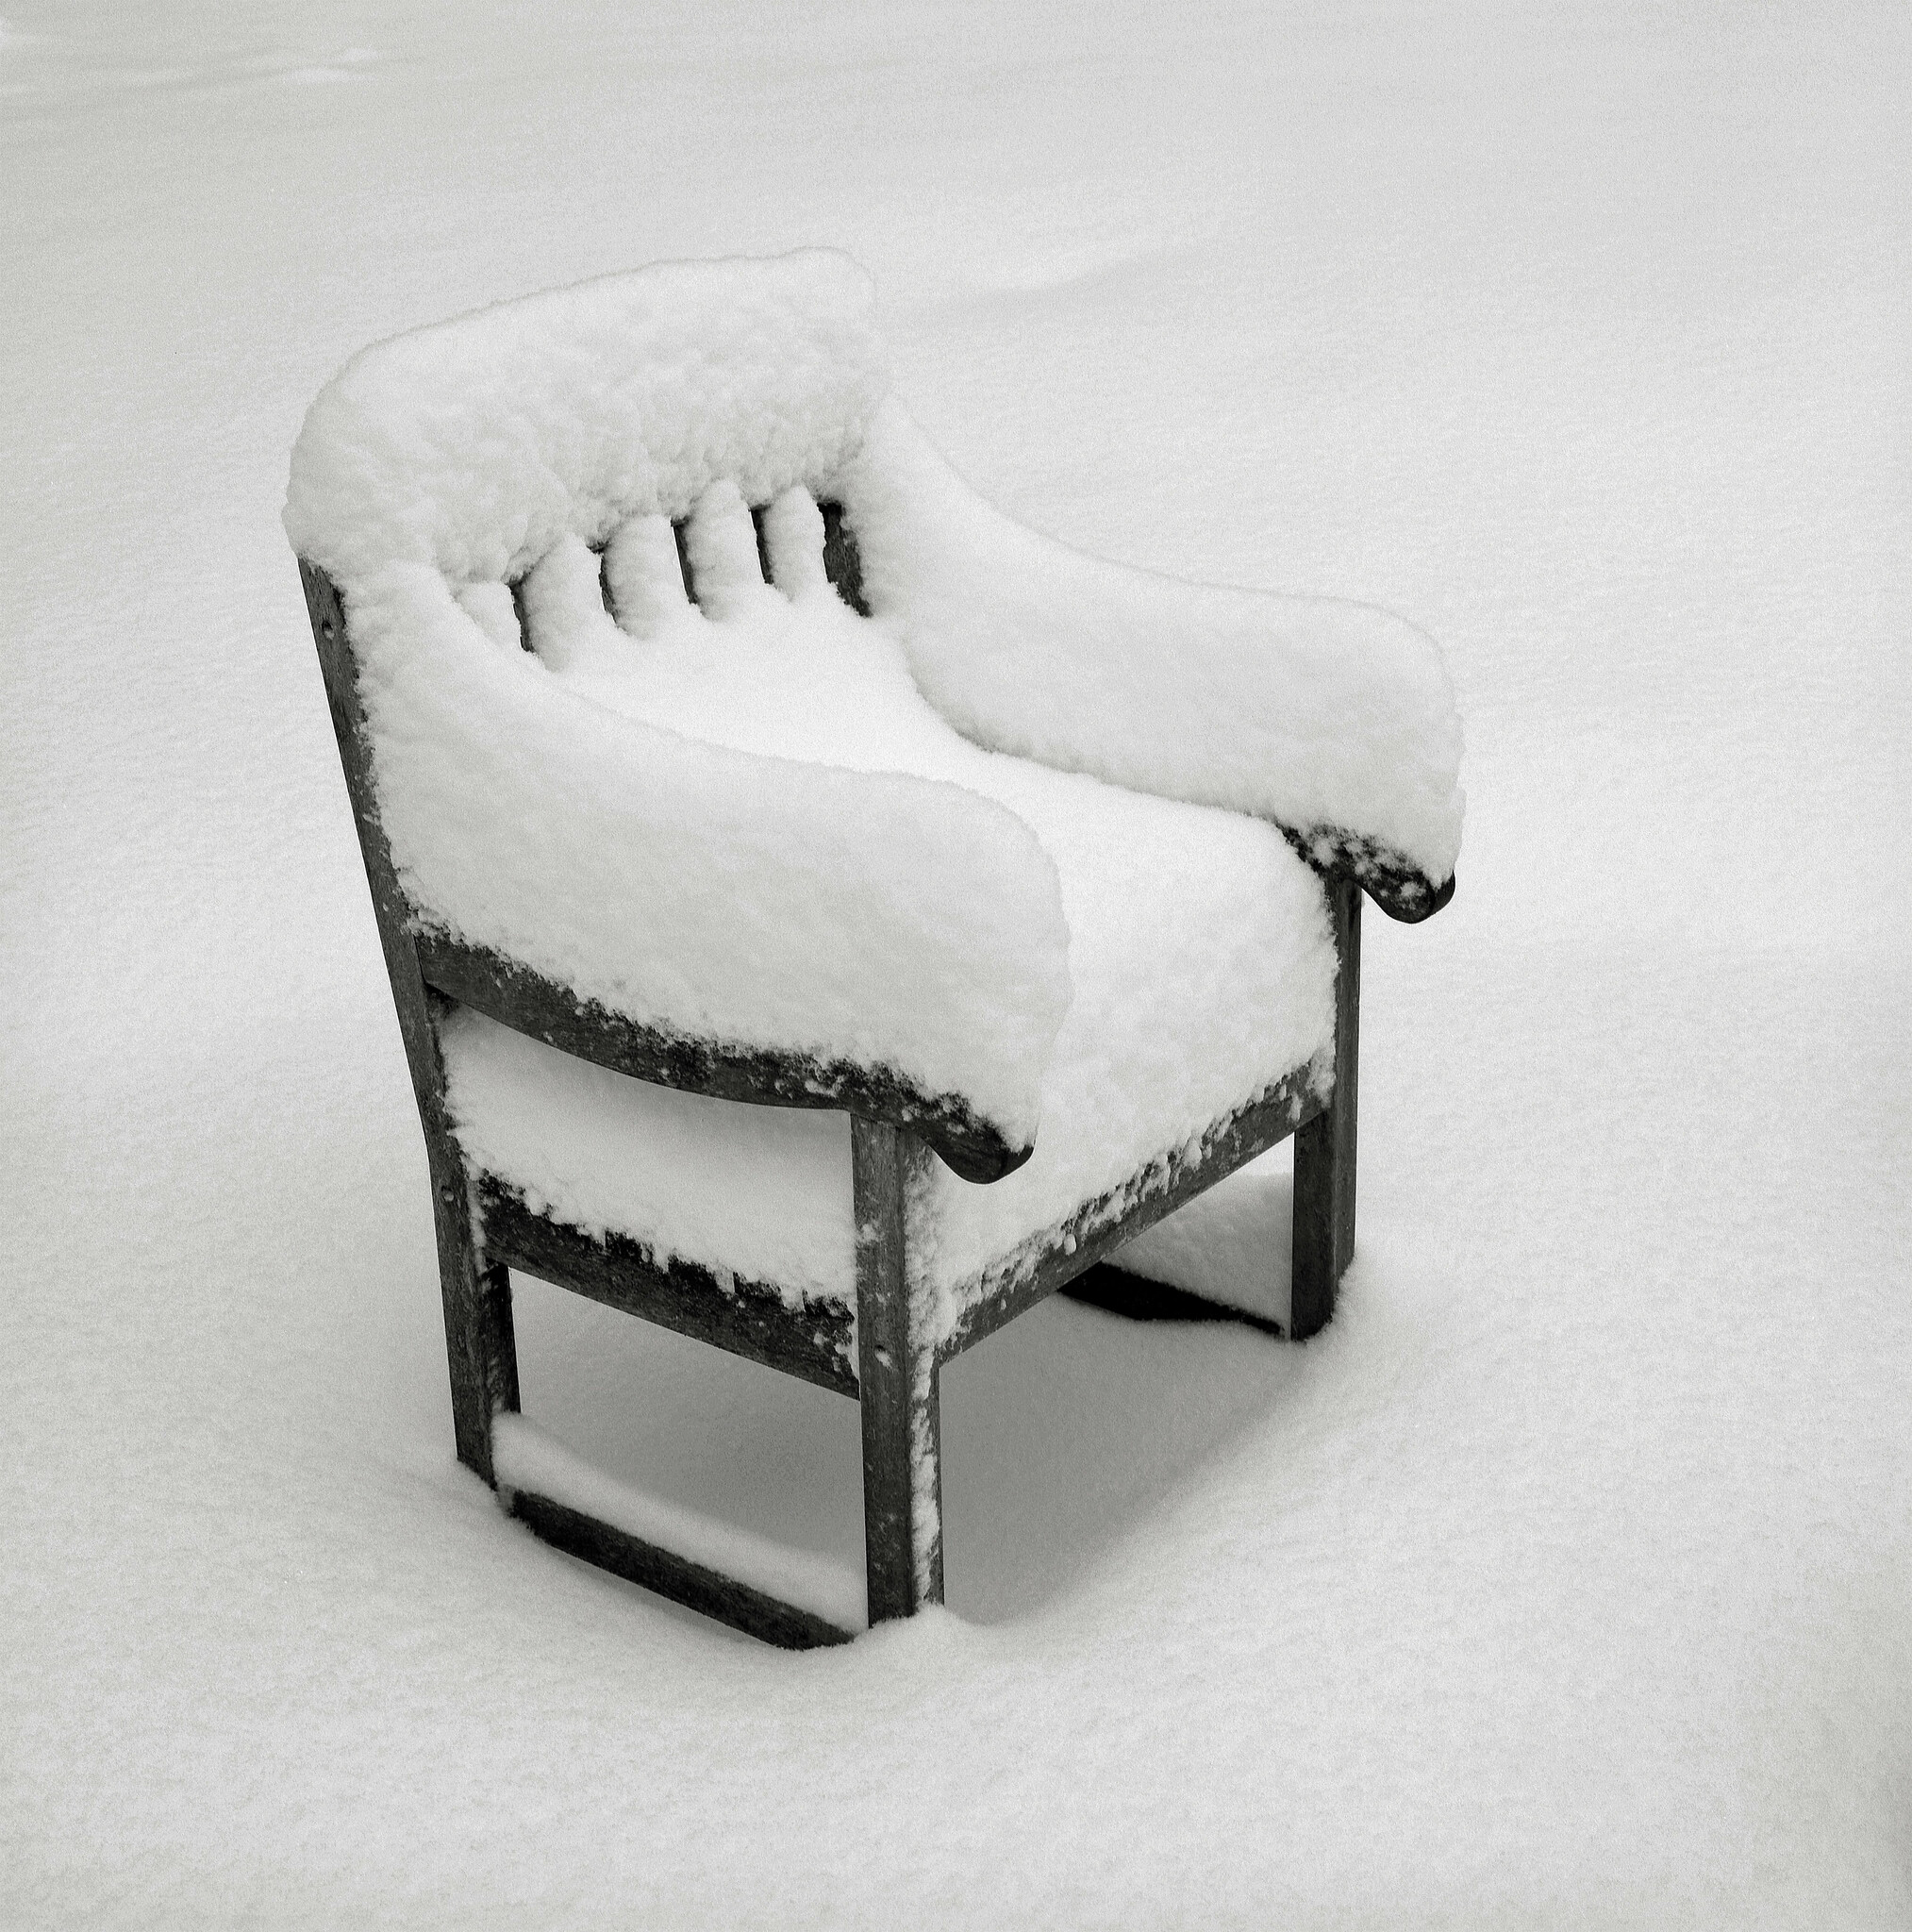 Chair in Snow, Portland